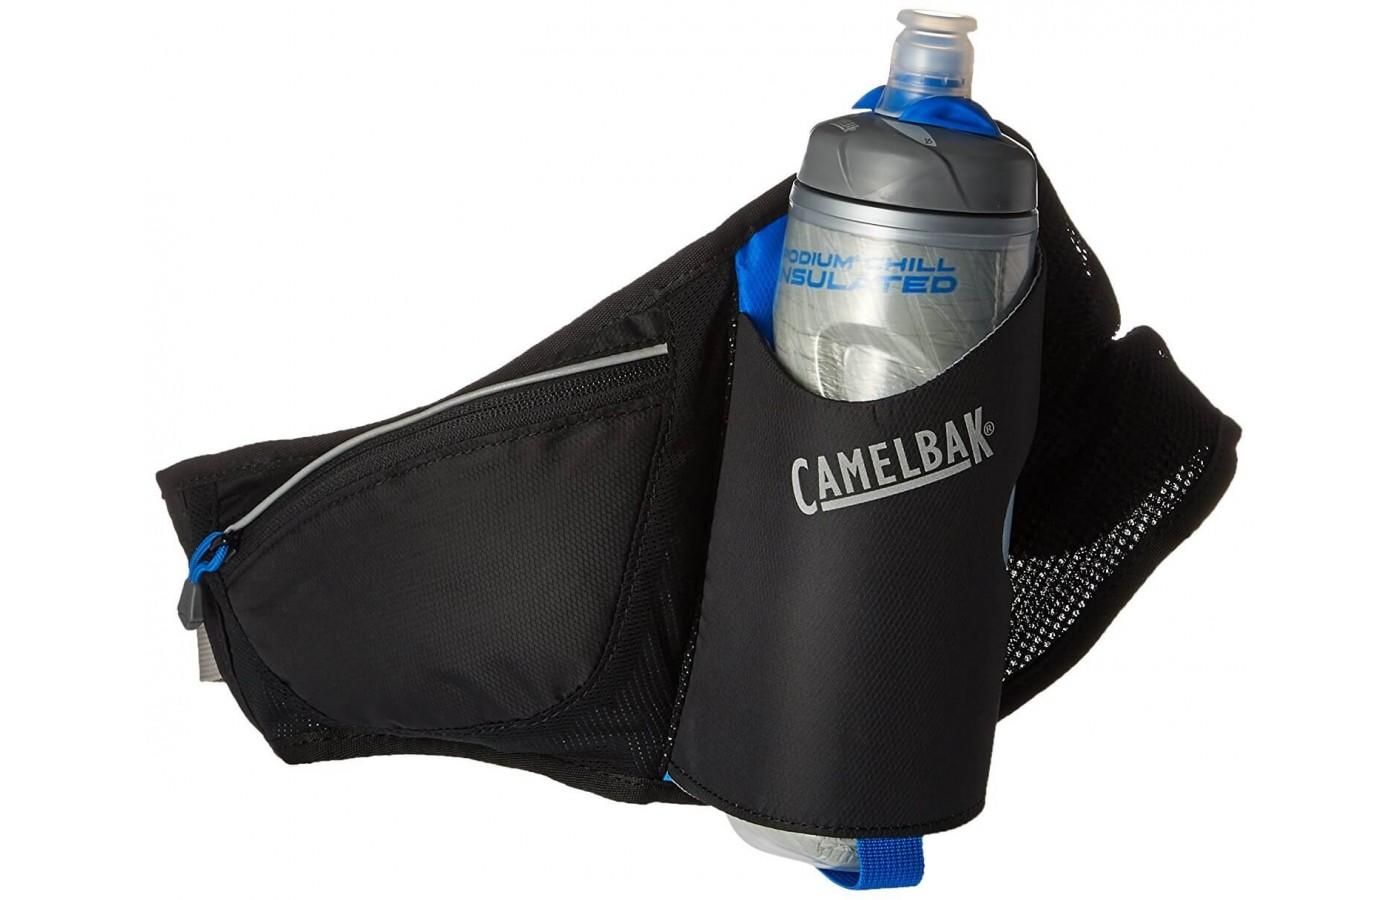 The Camelbak hydration belt comes with its own Podium Chill water bottle